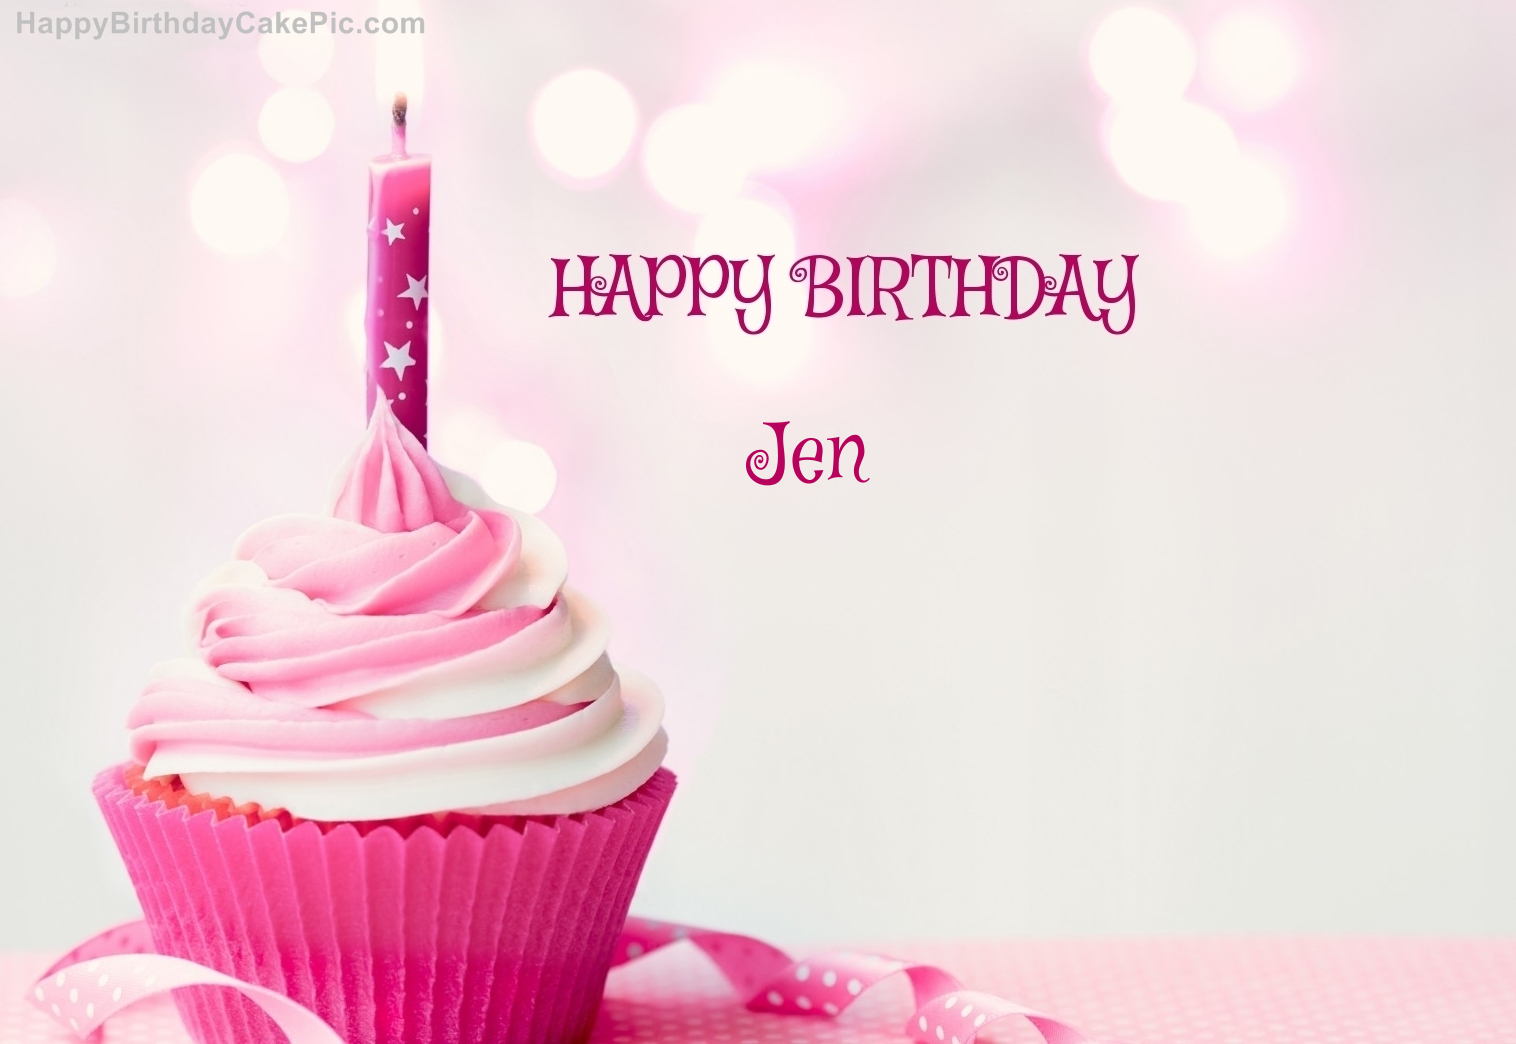 Happy Birthday Jennifer Cake